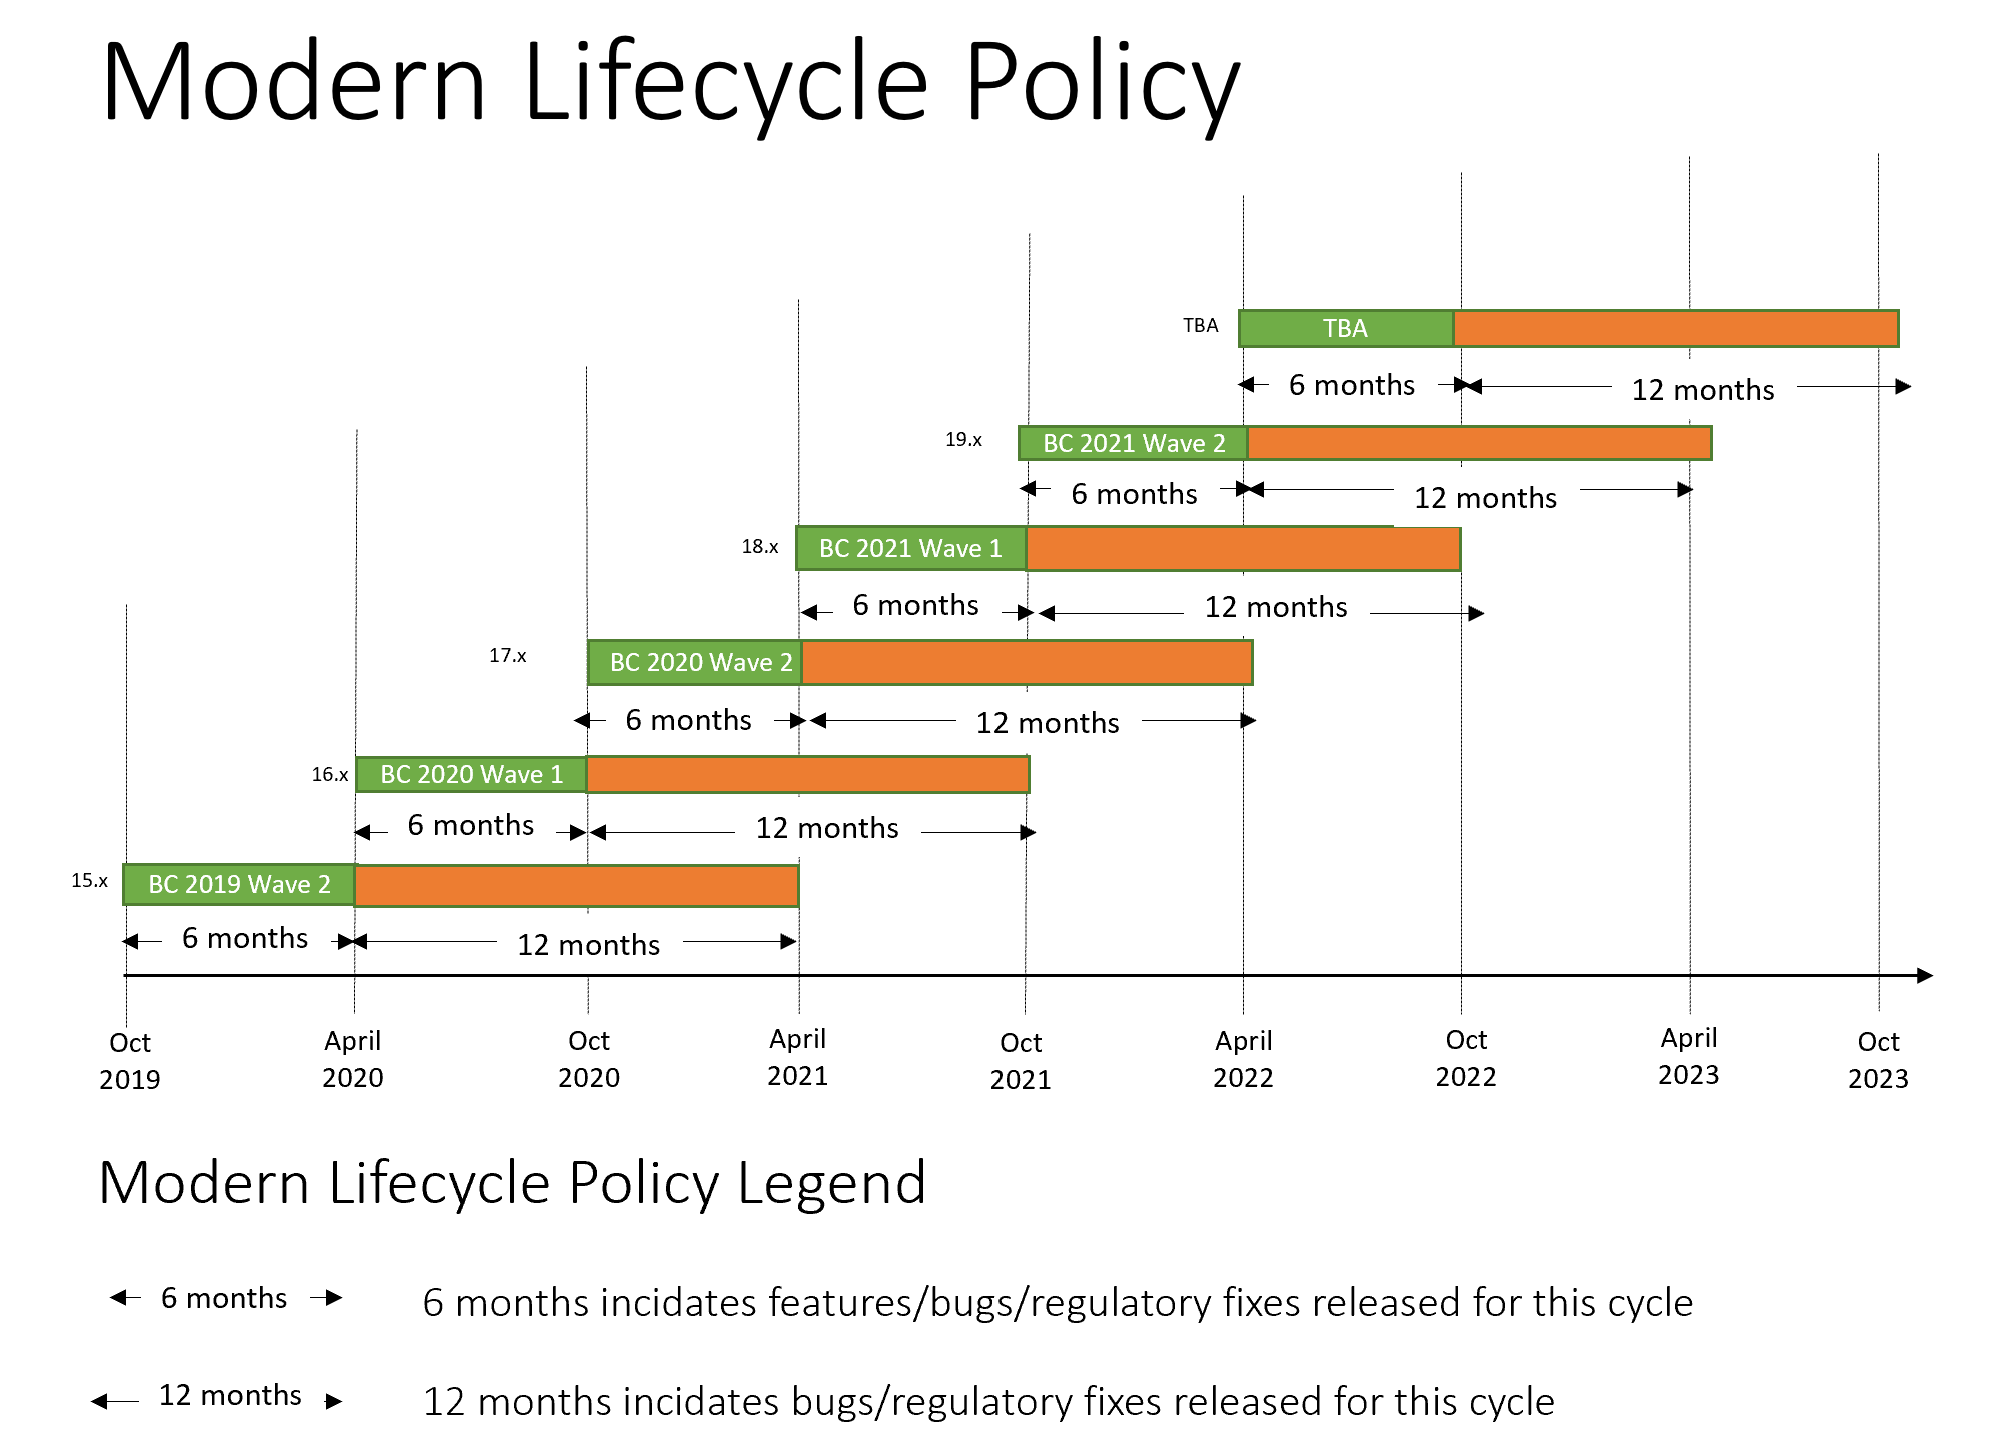 Modern Lifecycle Policy